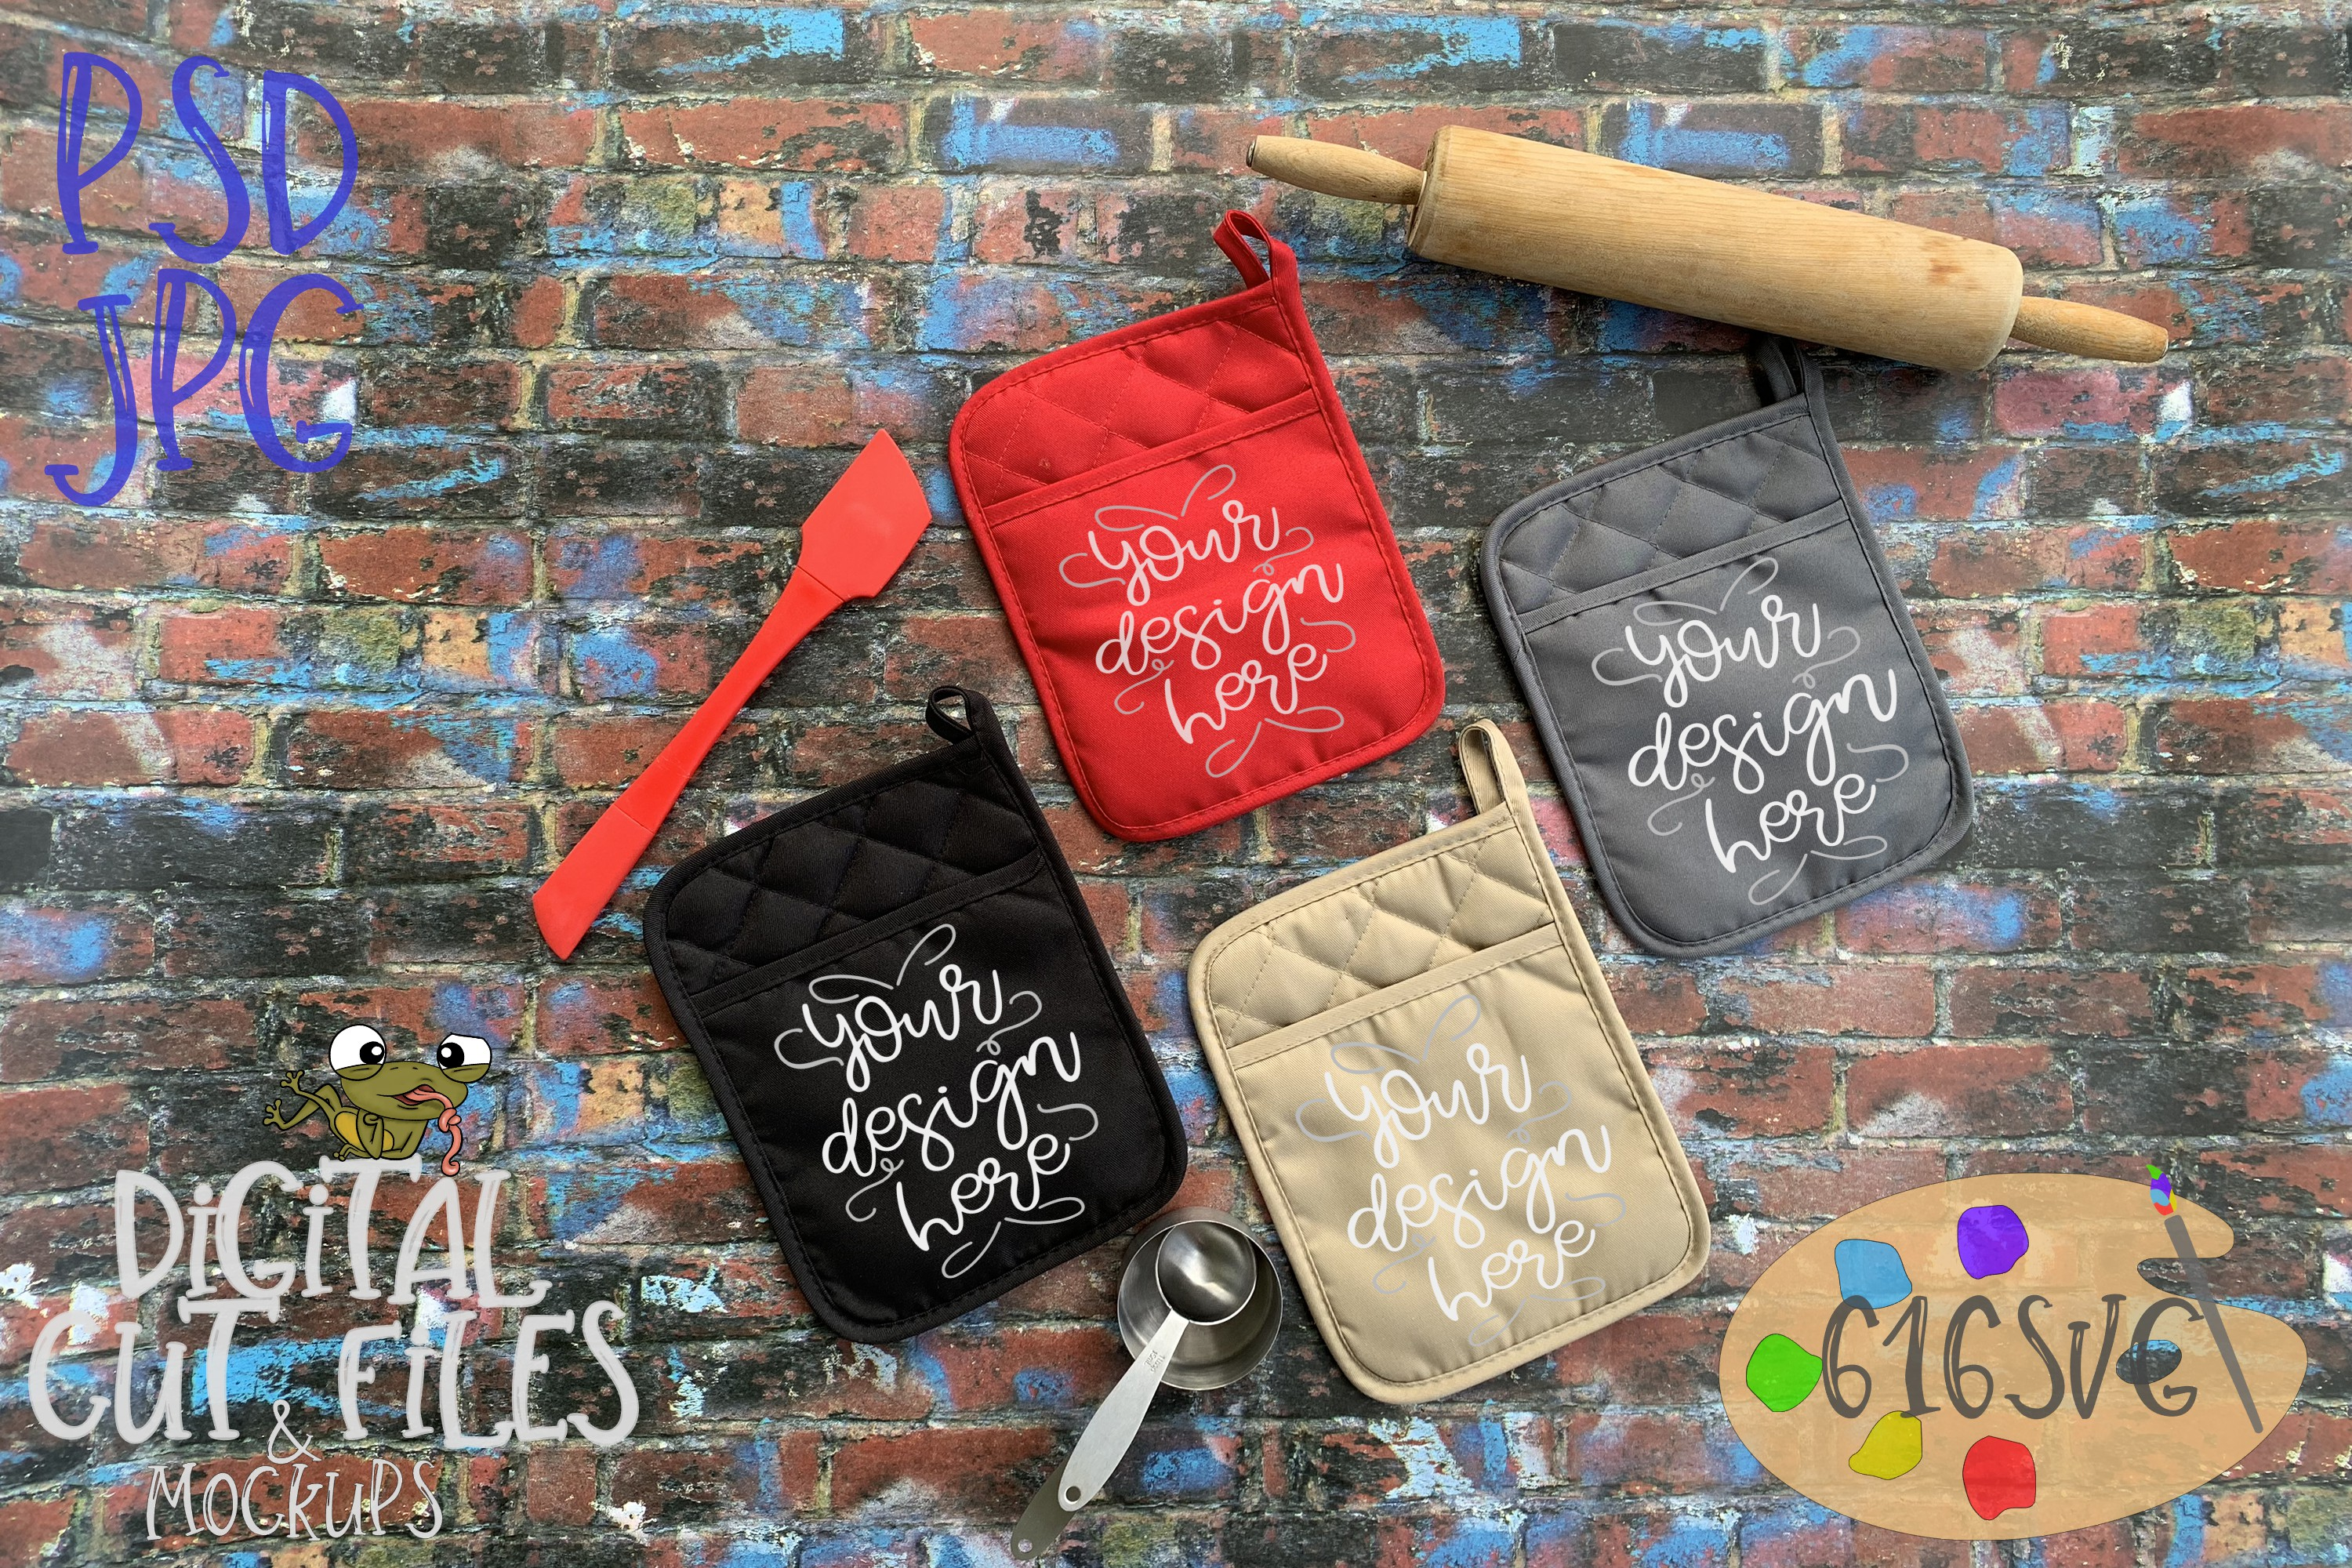 Download Free 4 Colors Of Potholders In Jpg Psd Mockup Graphic By 616svg for Cricut Explore, Silhouette and other cutting machines.